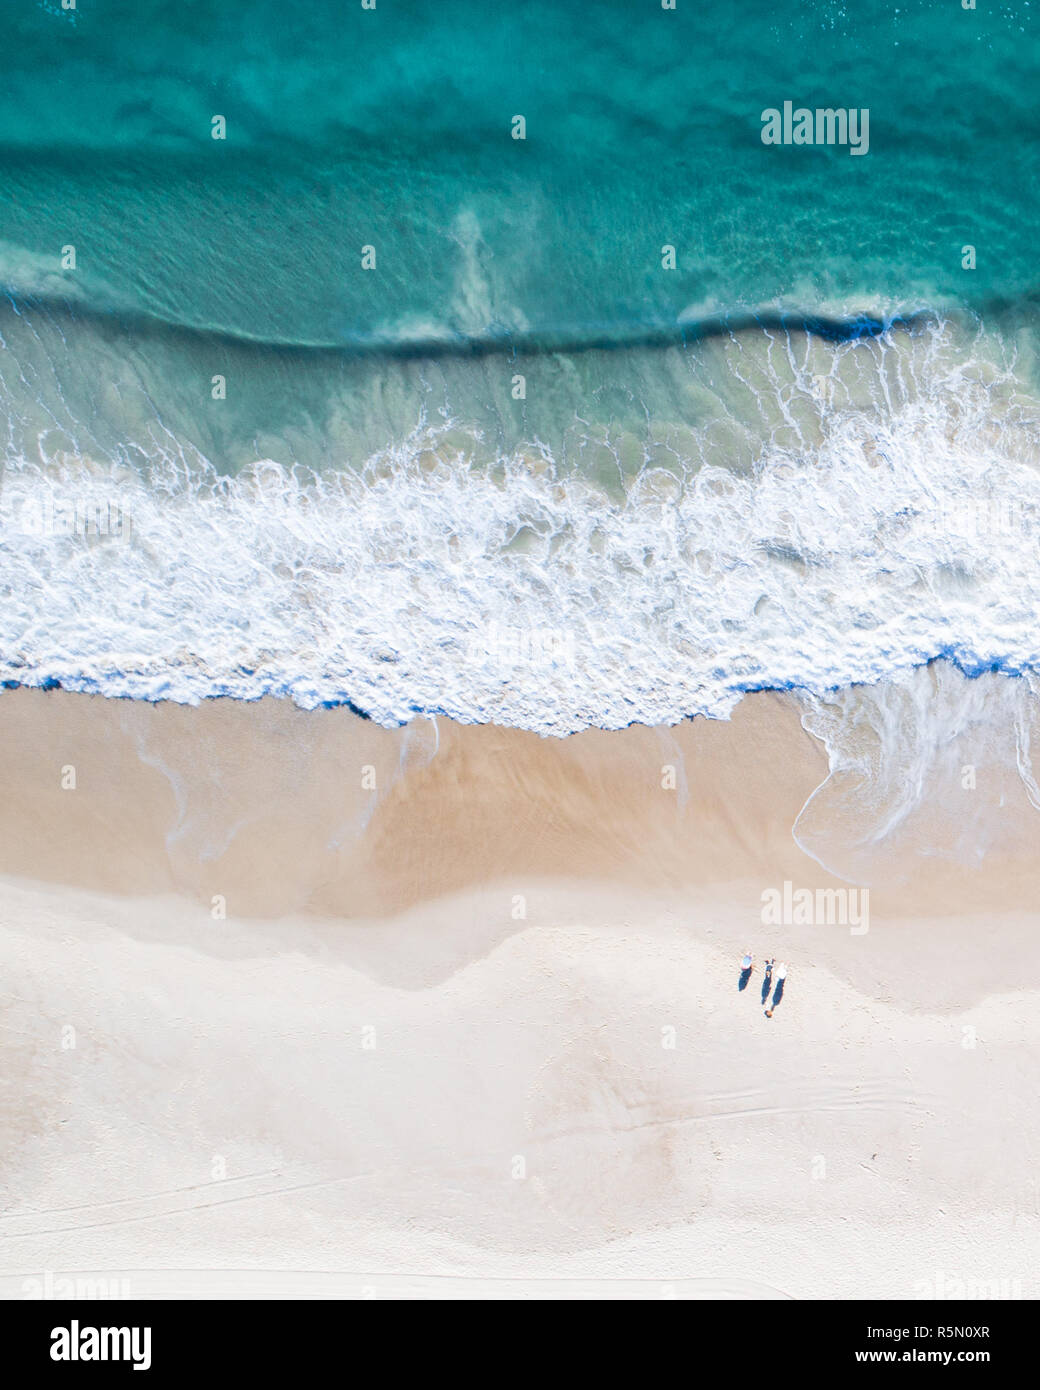 Beautiful blue wave crashing on white sand. Amazing aerial view of a beach in Australia - Stock Image